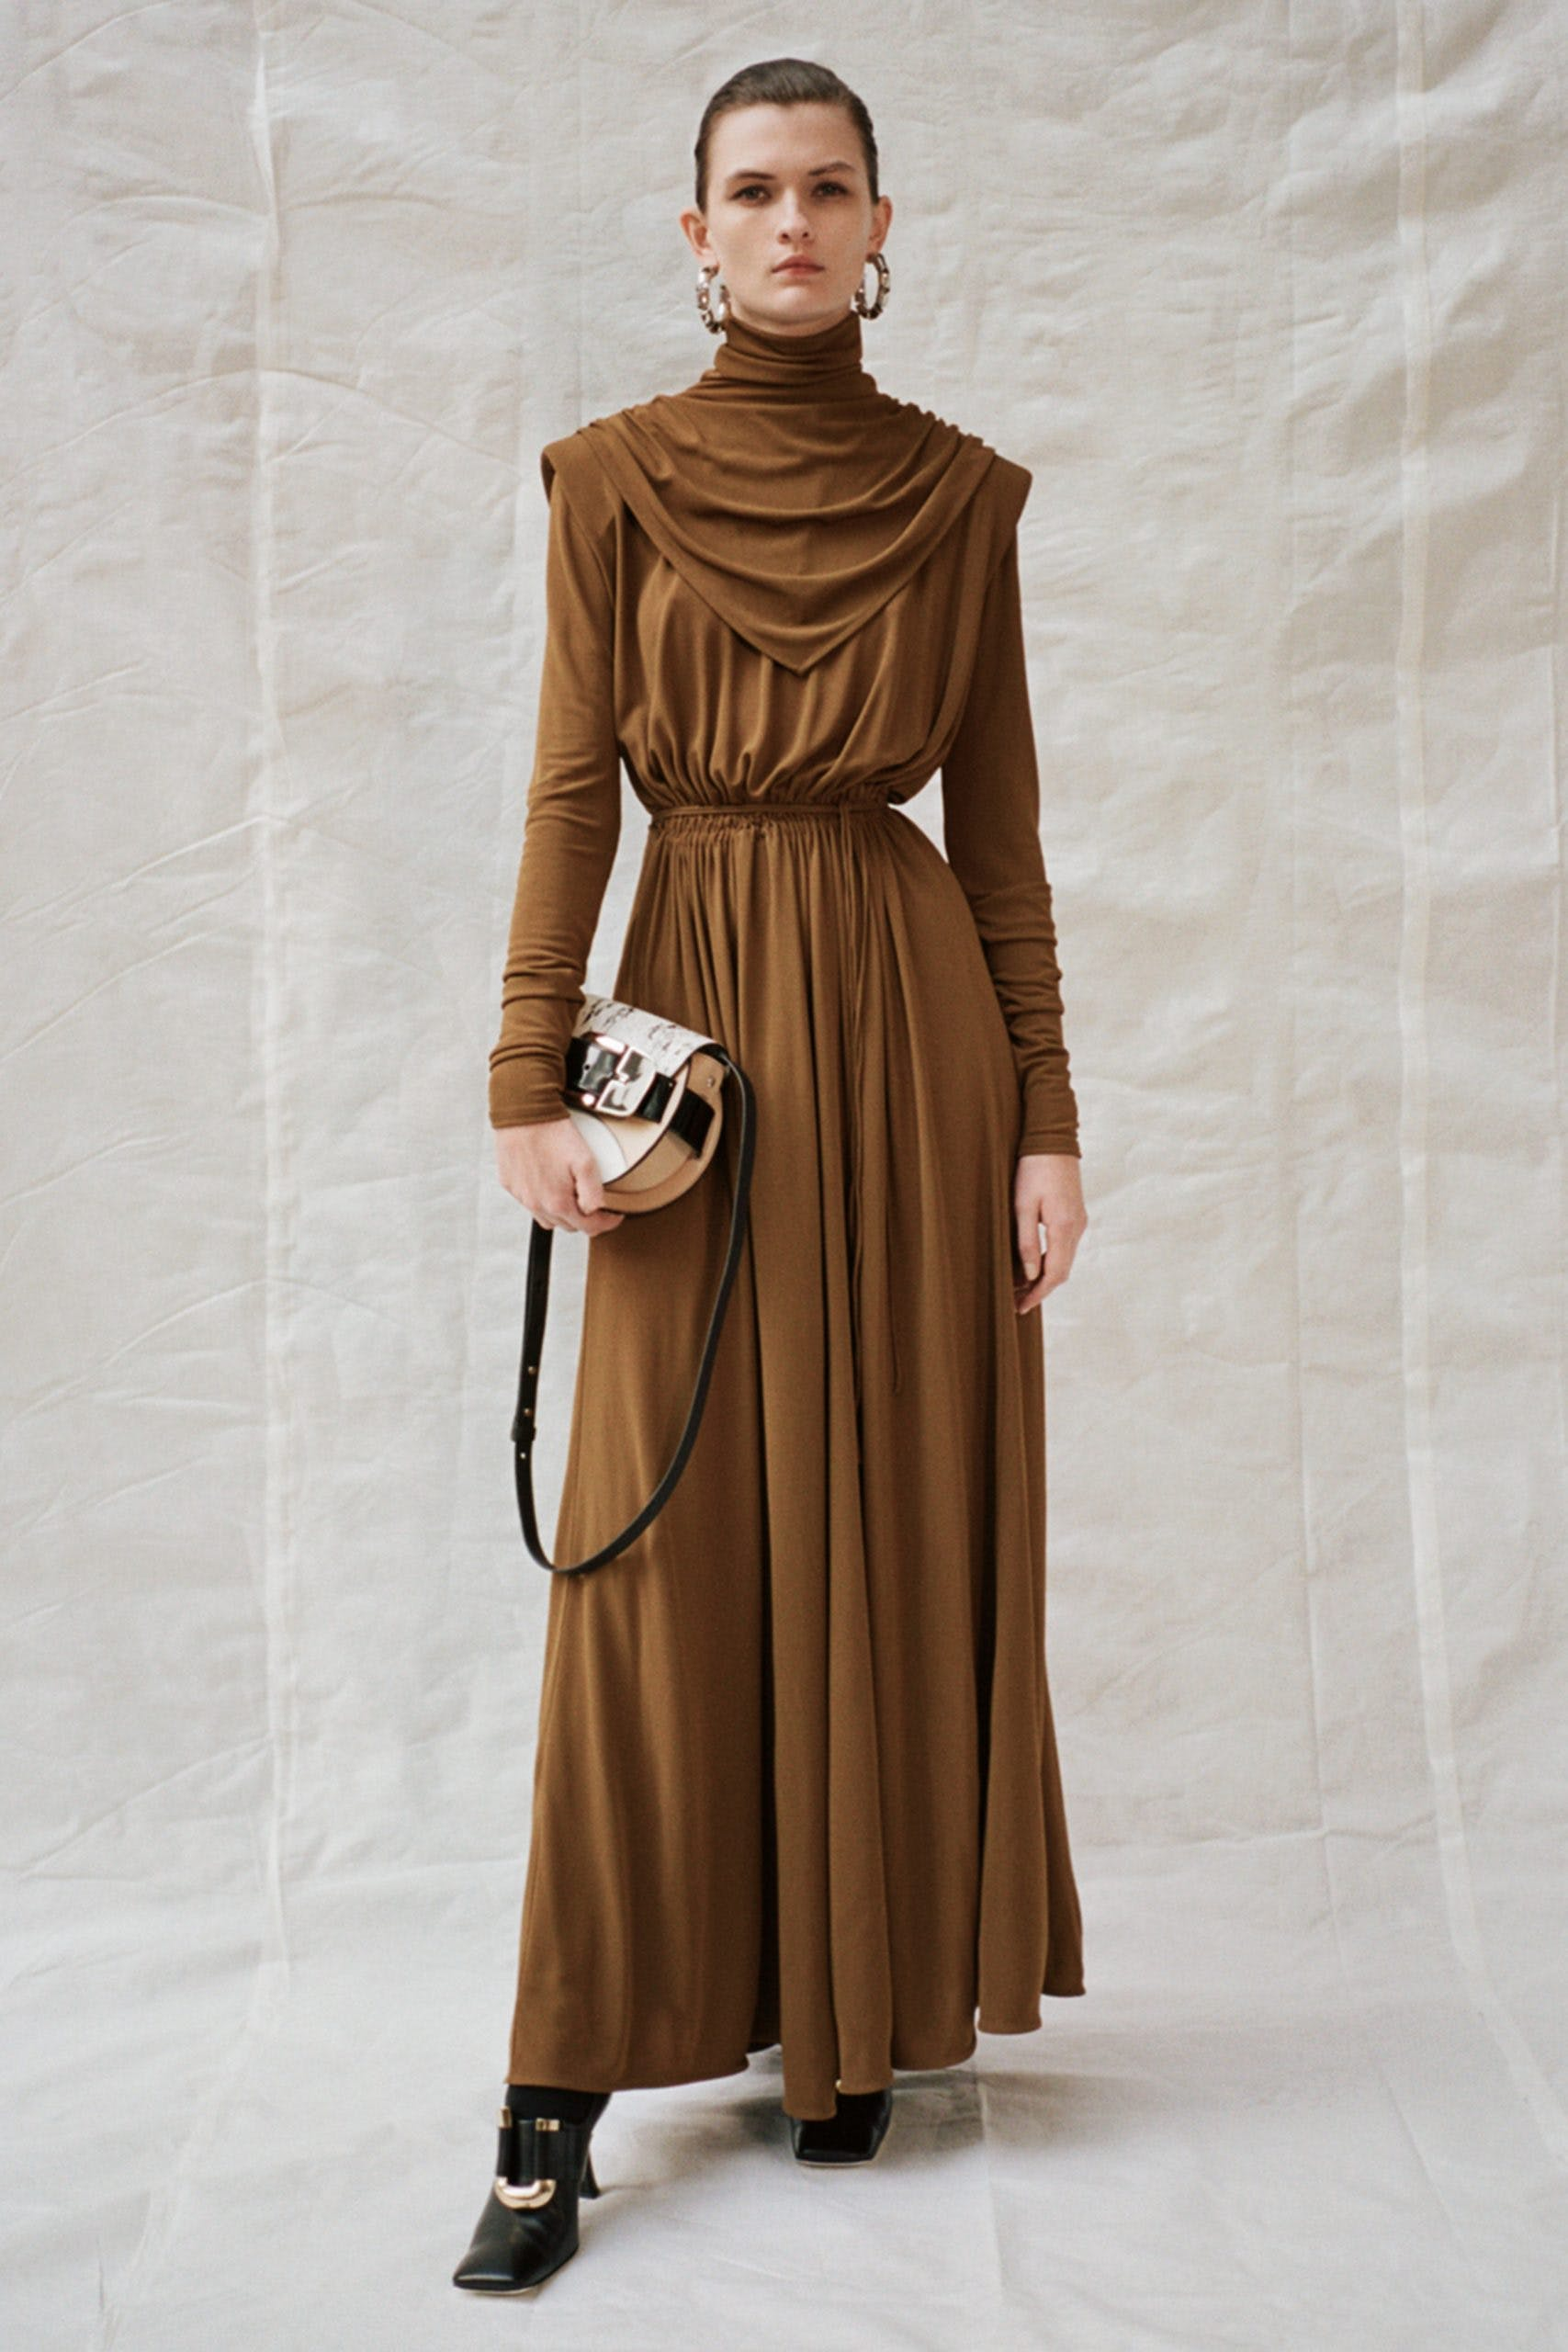 proenza scohuler pf20 brown cowl neck dress